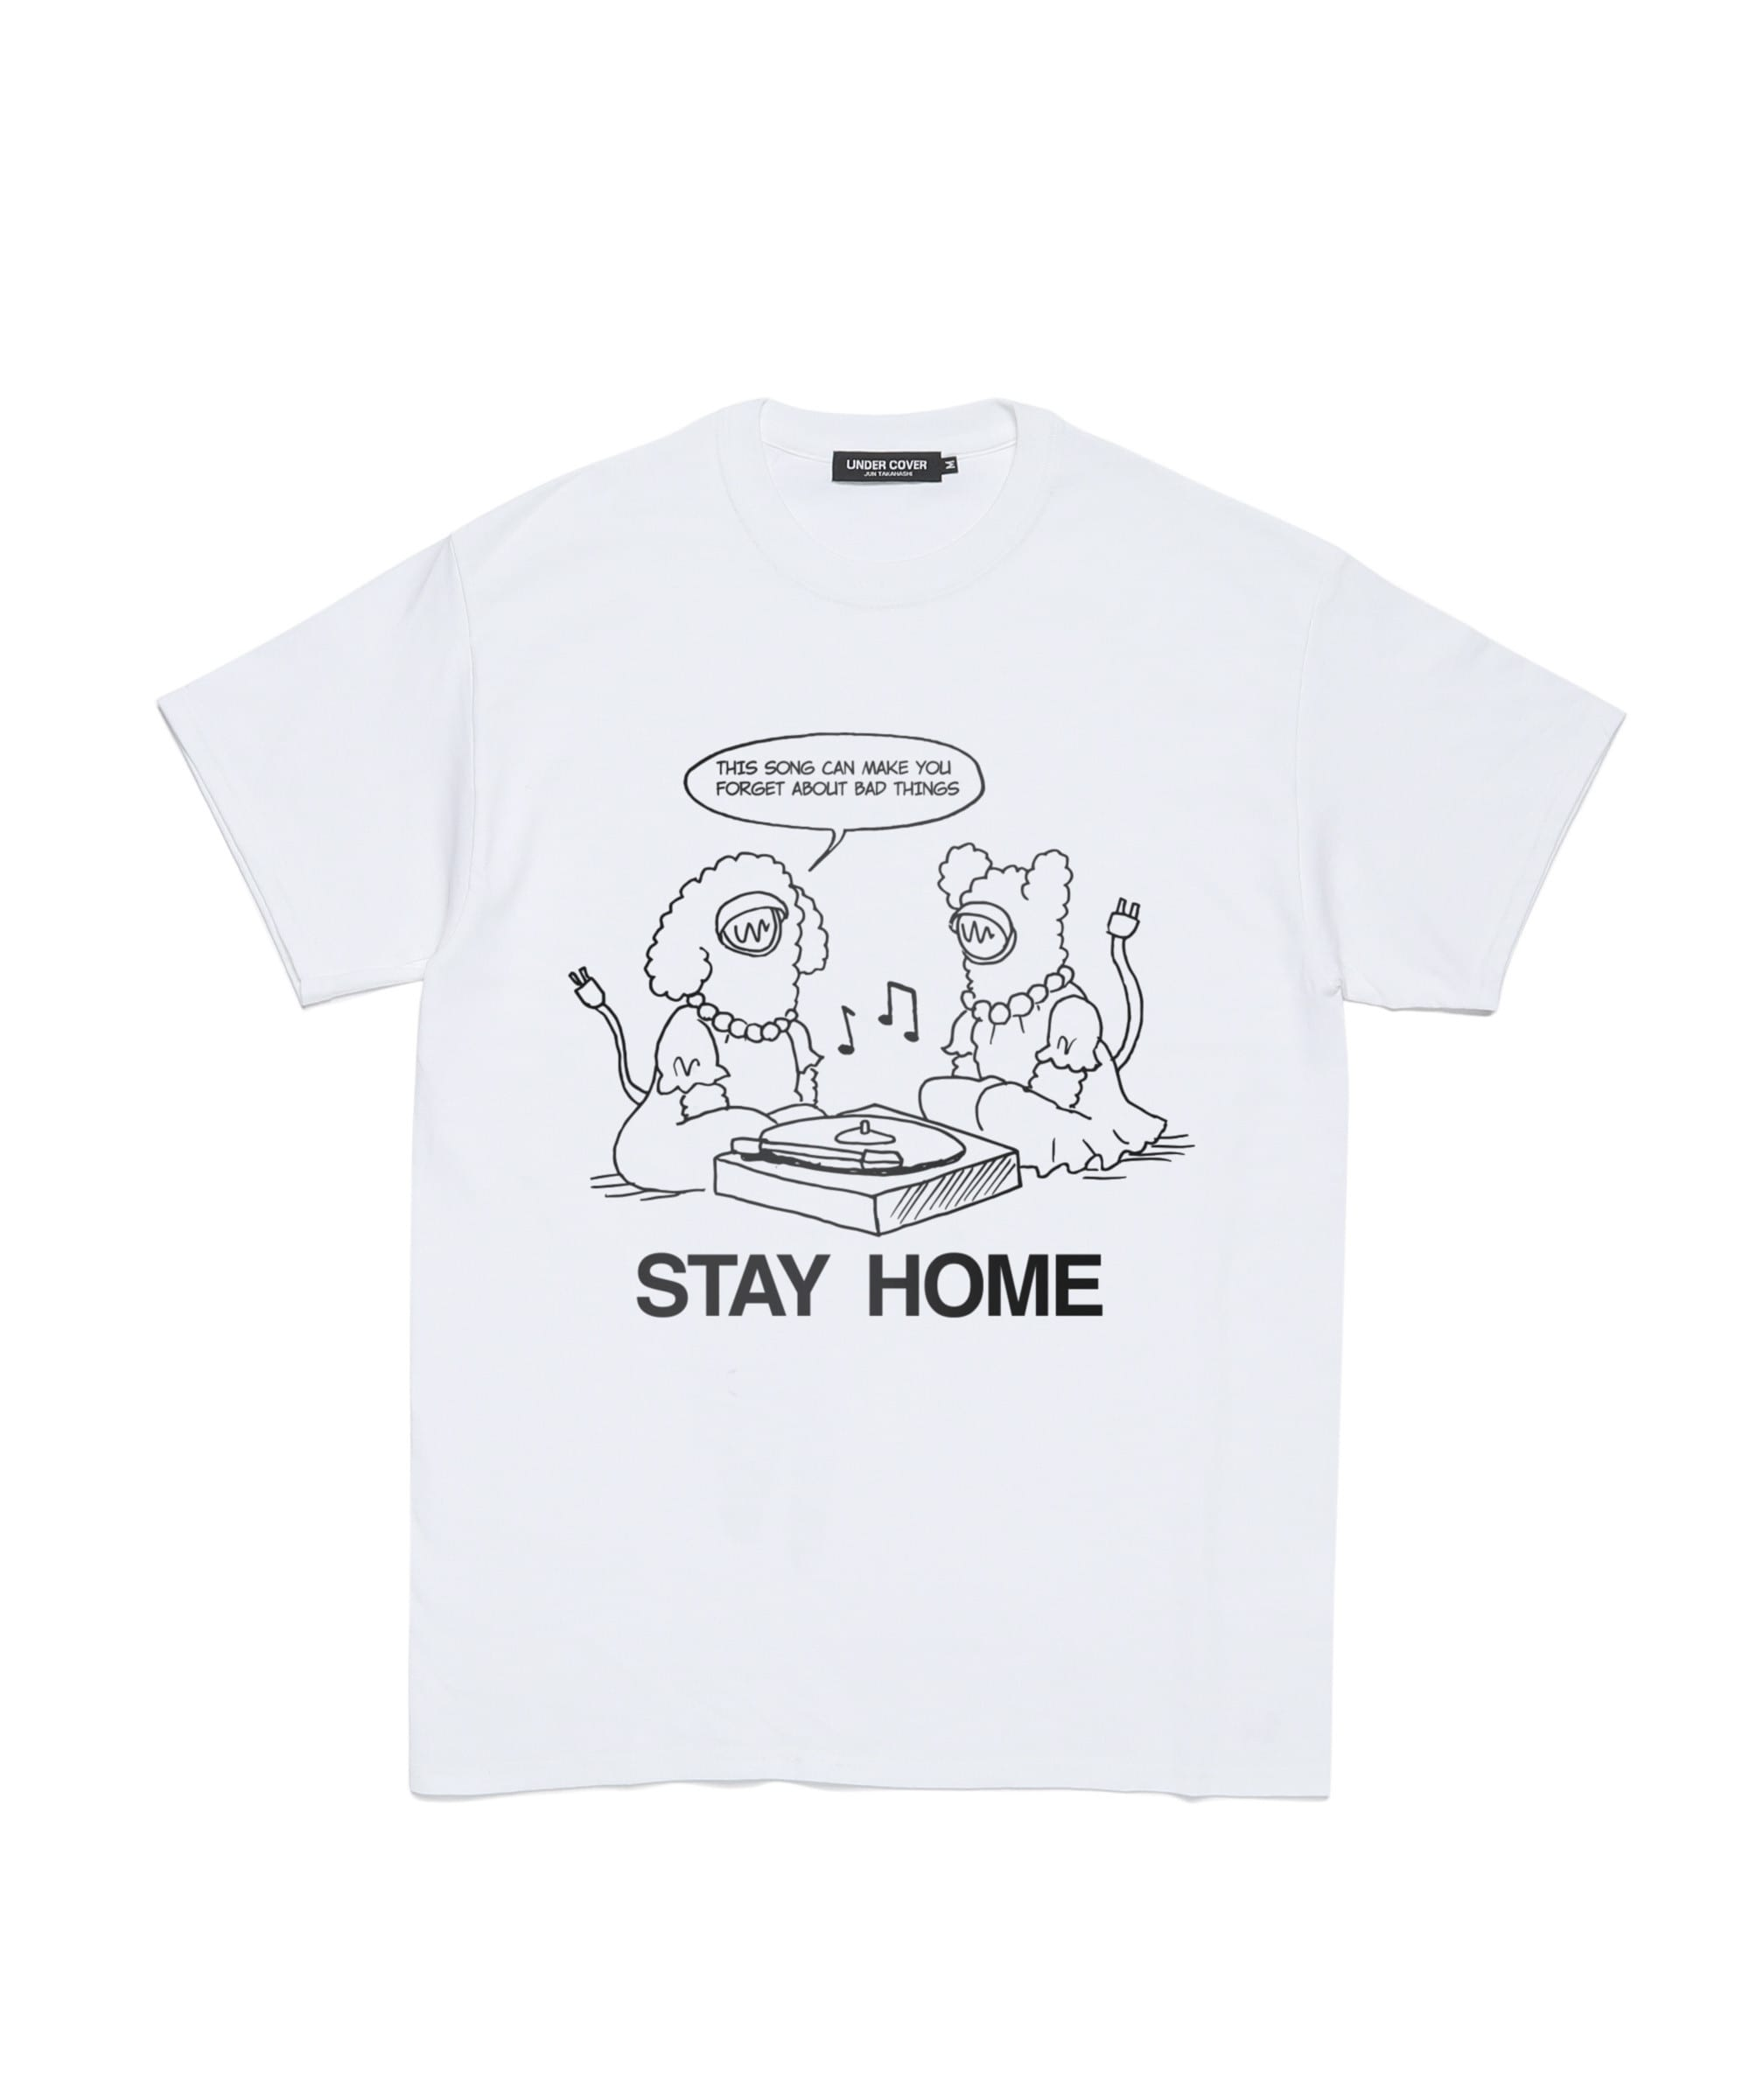 undercover-stay-home-t-shirt-release-20200417